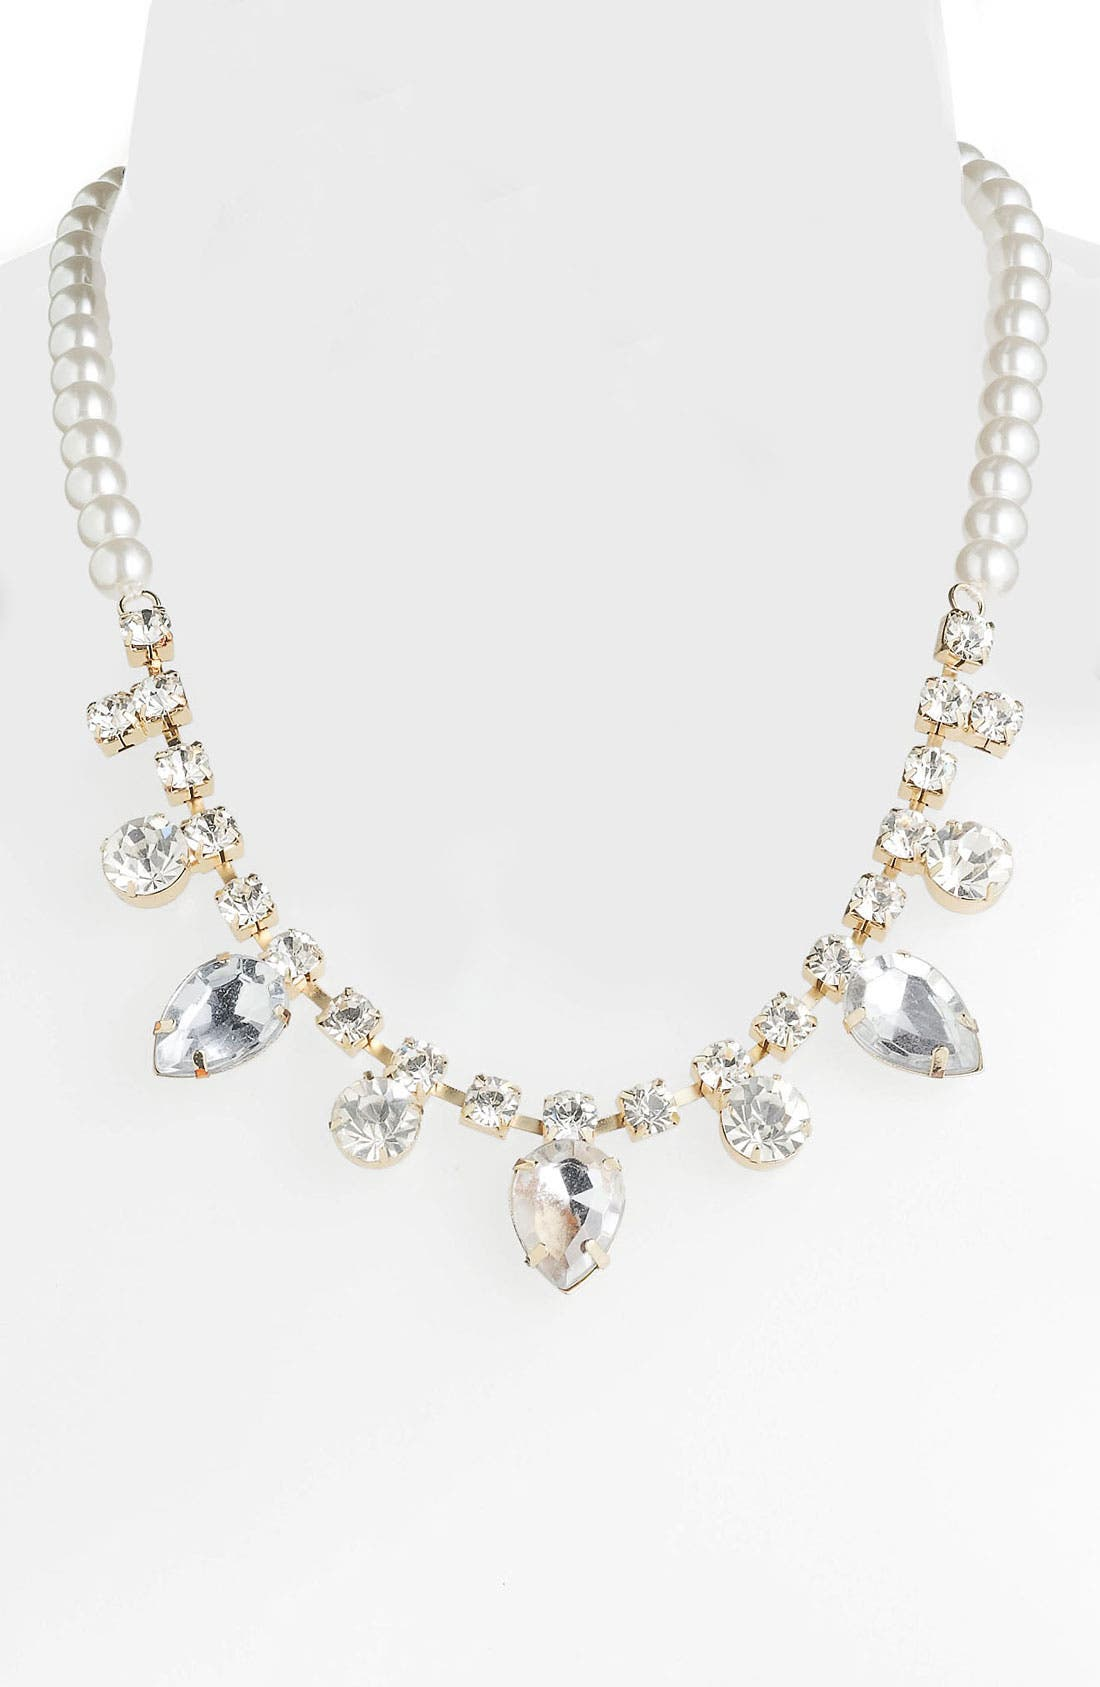 Main Image - Stephan & Co. Rhinestone & Faux Pearl Necklace